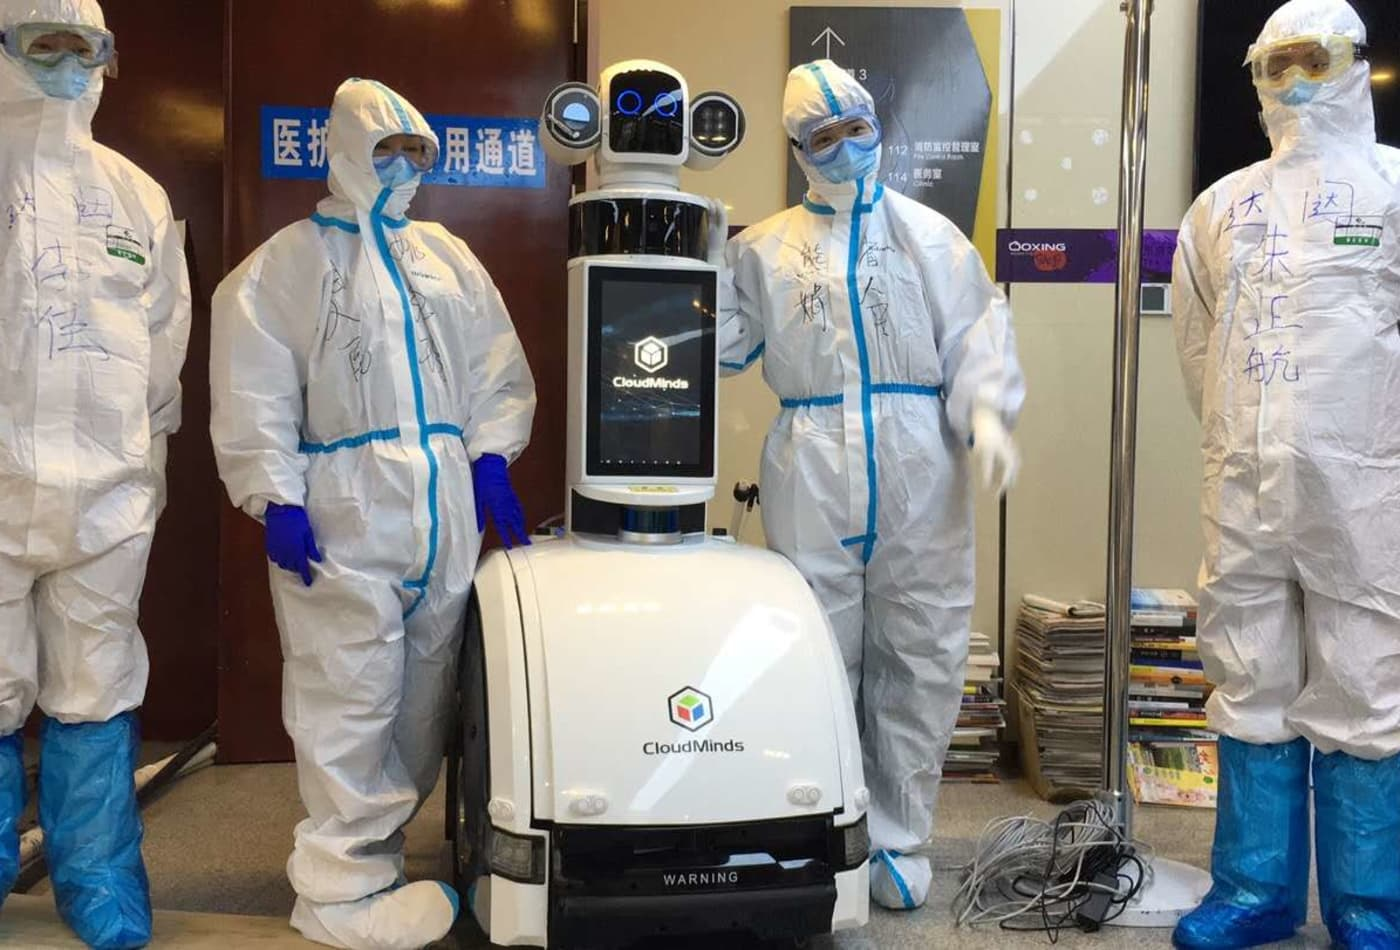 Video: Hospital in China where COVID-19 patients treated by robots